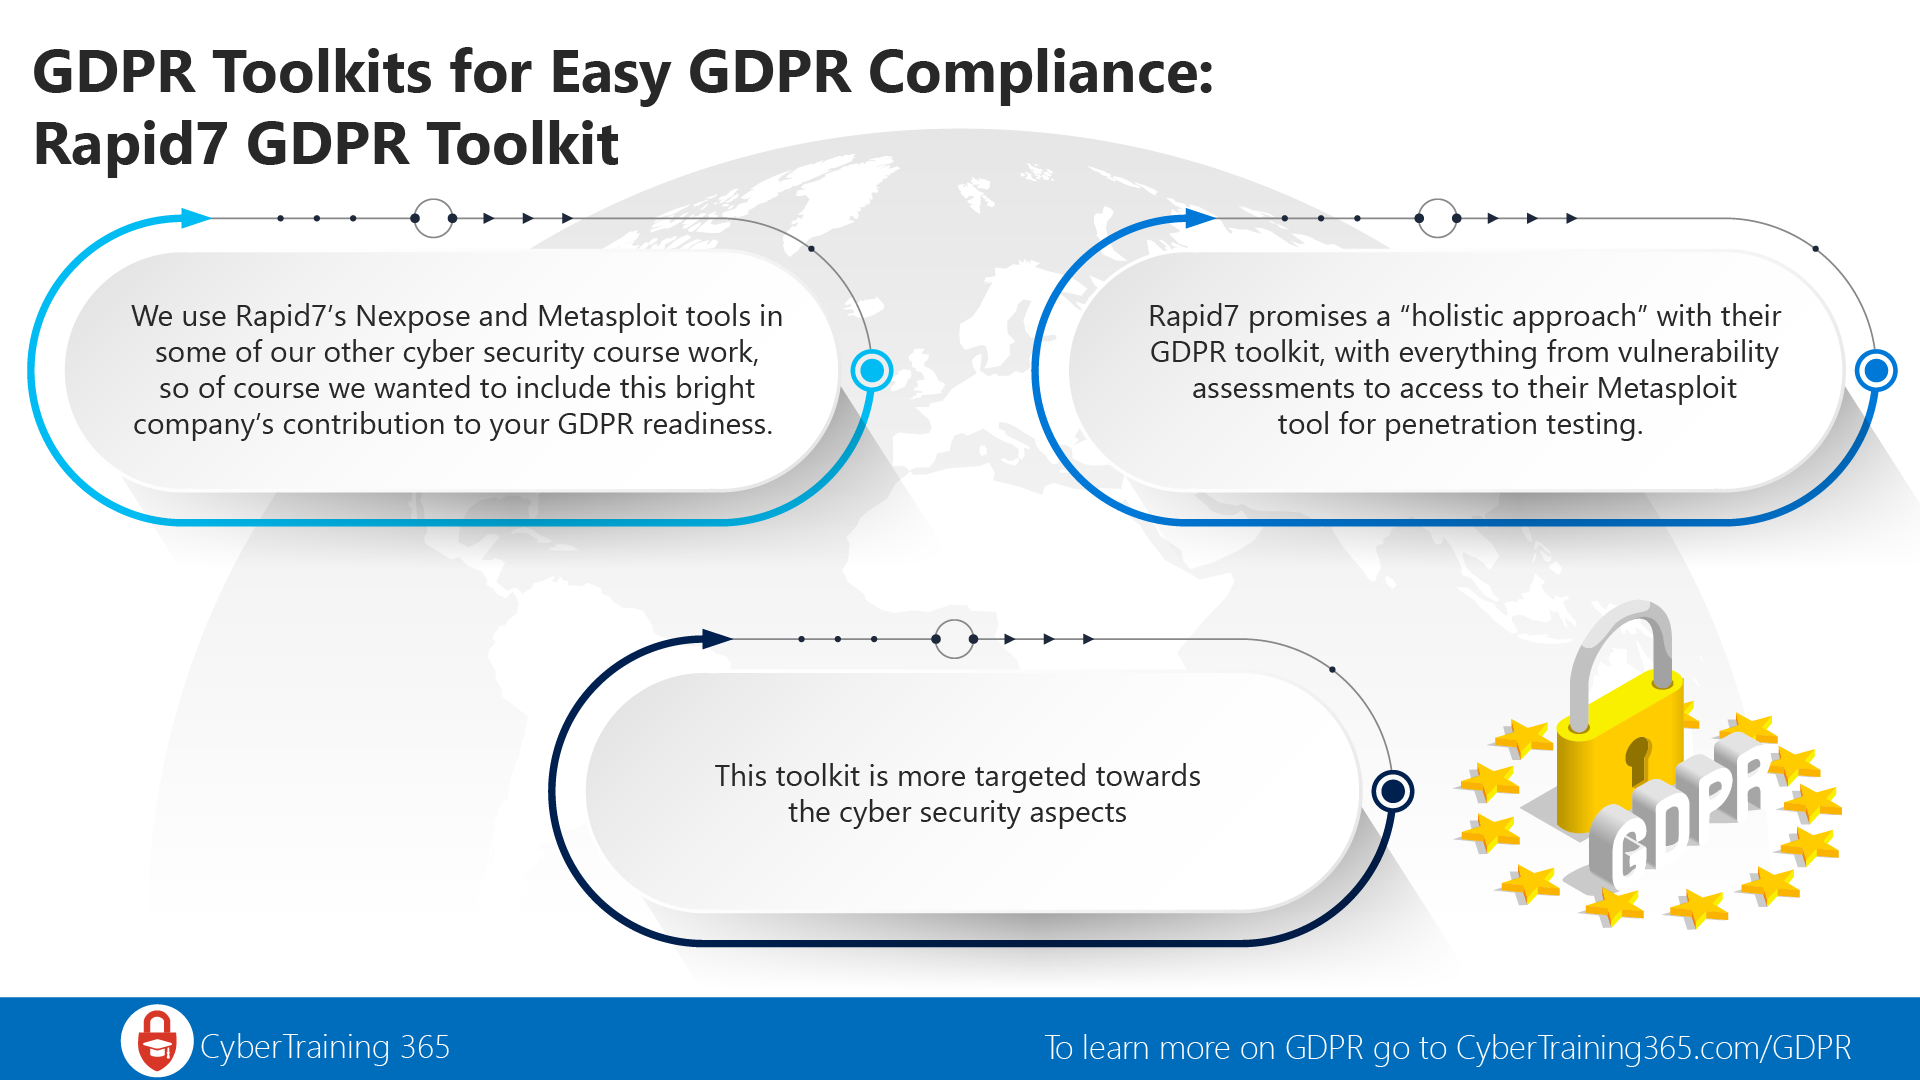 Rapid7 GDPR Toolkit